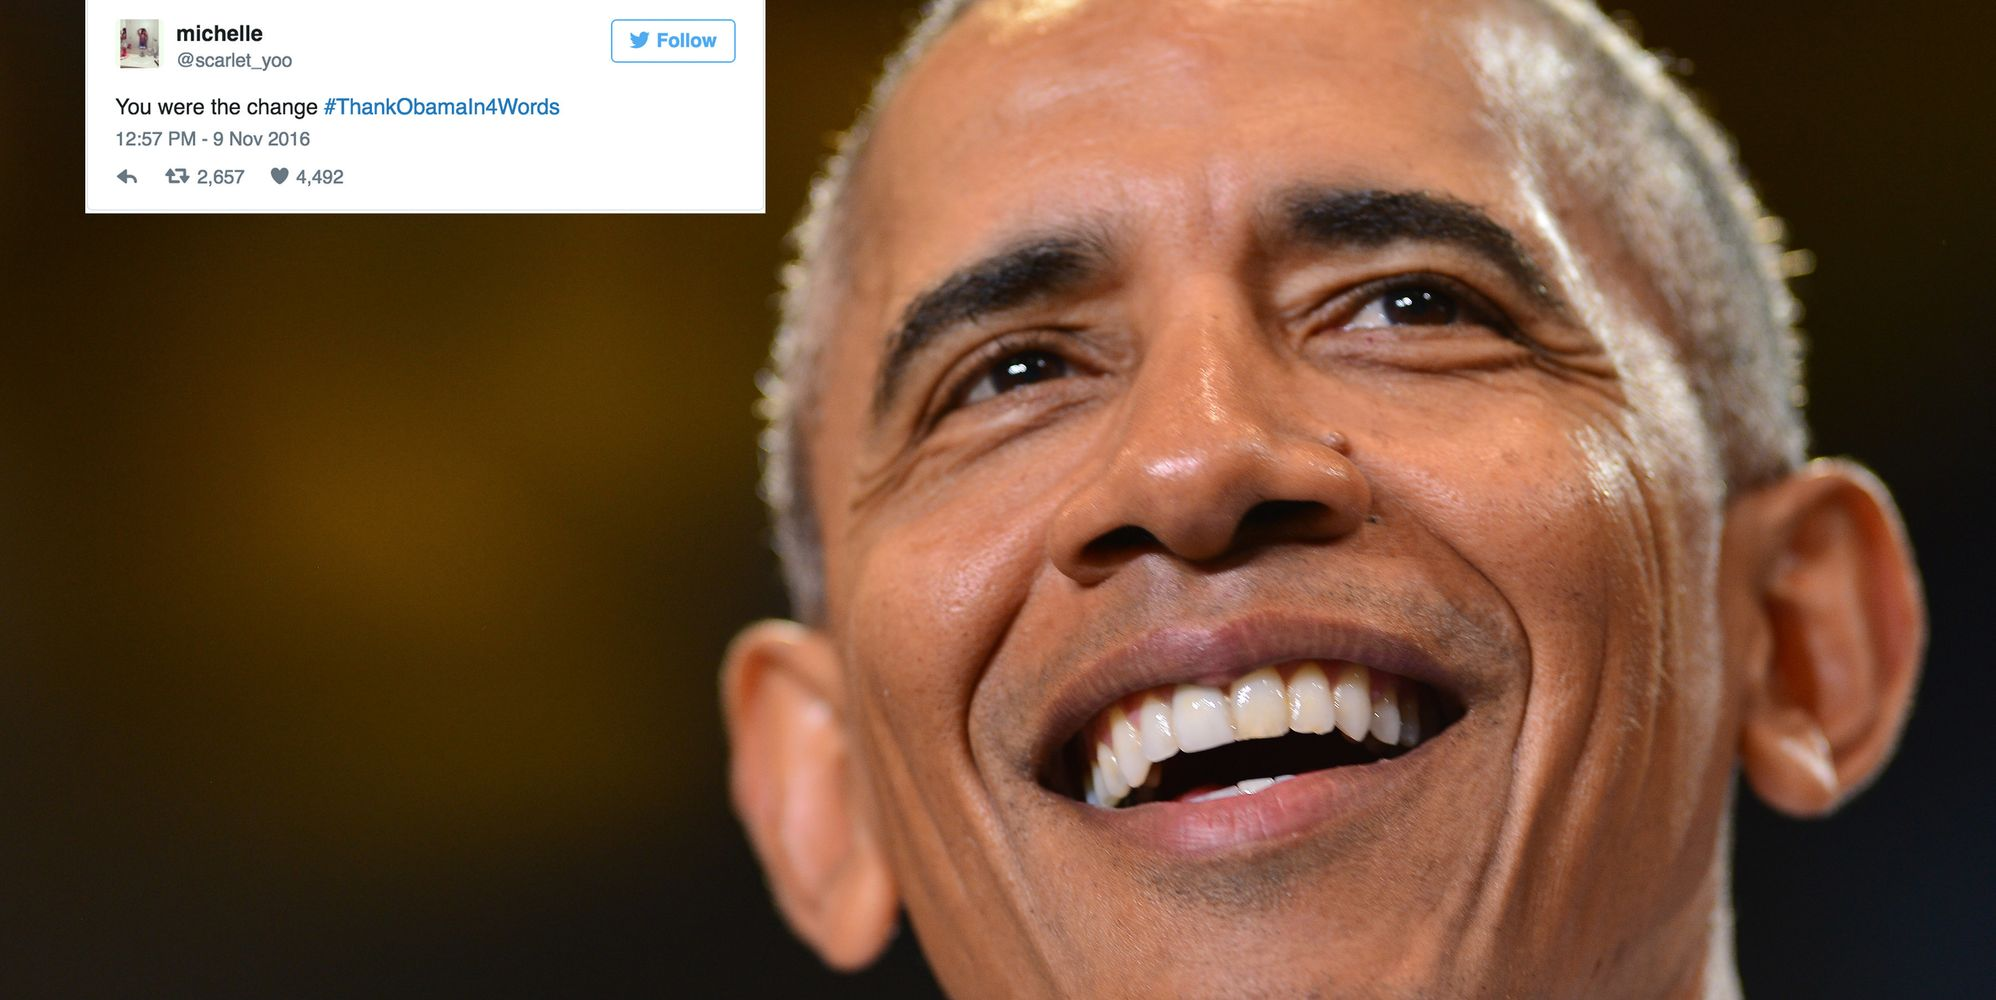 twitter users take this moment to thank president barack obama in twitter users take this moment to thank president barack obama in 4 words the huffington post